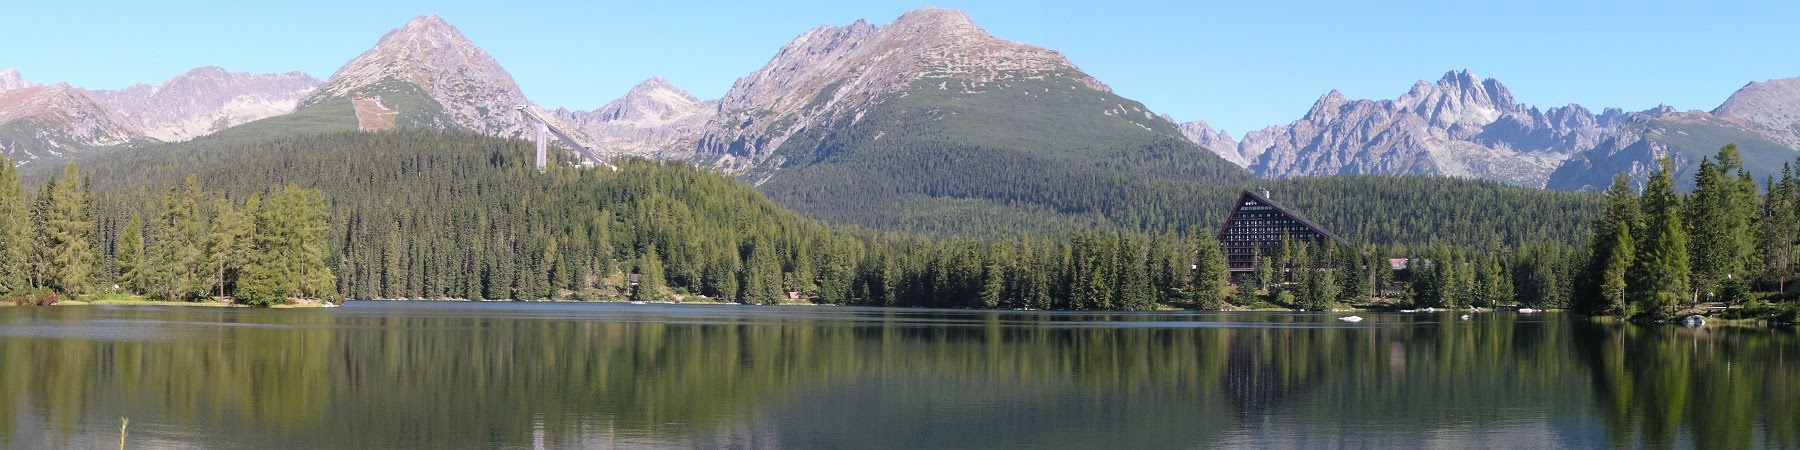 Strbske Pleso Lake in the High Tatras, Slovakia